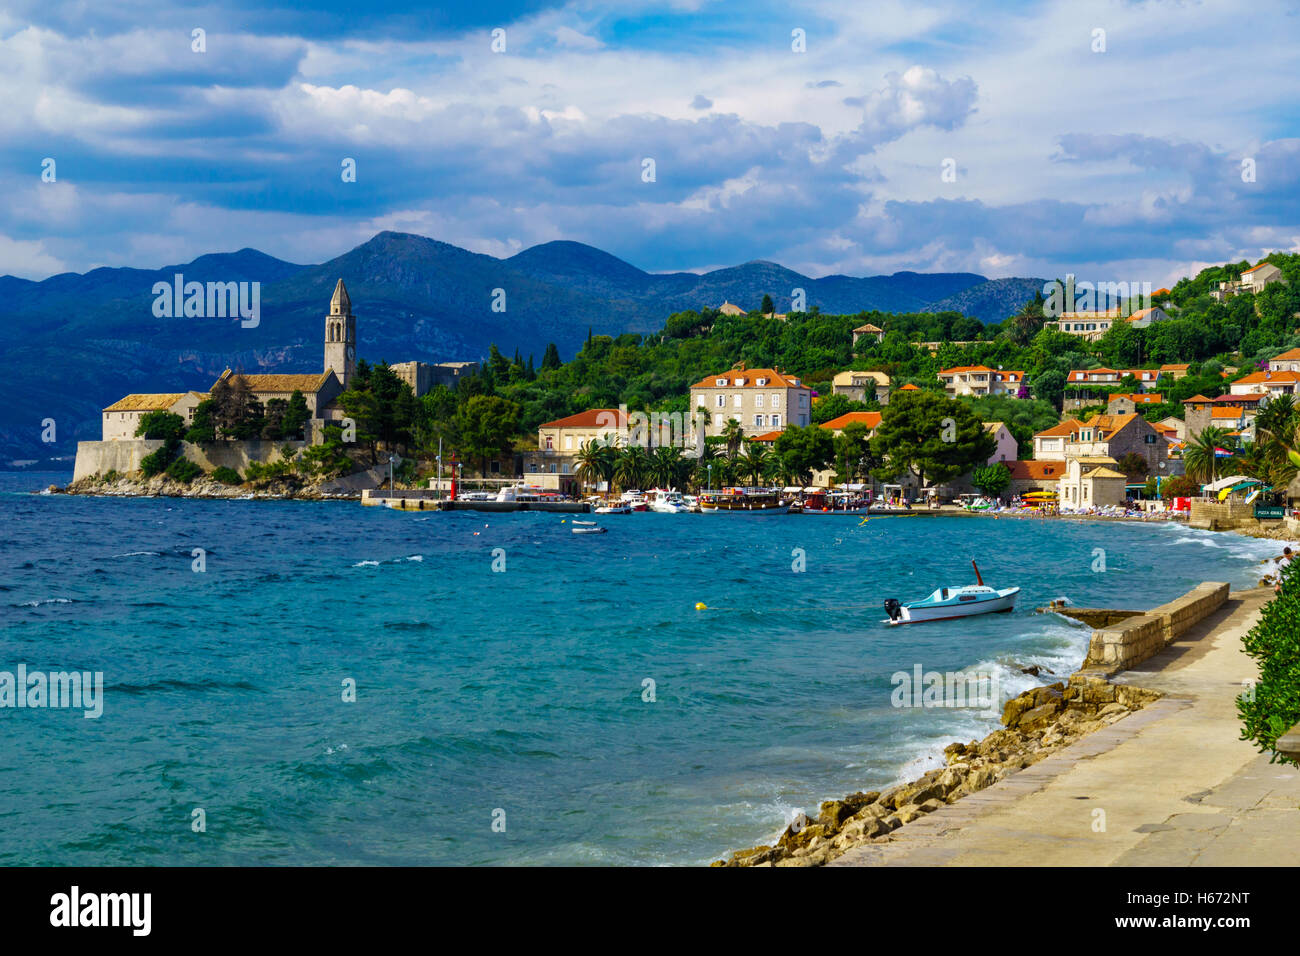 LOPUD, CROATIA - JUNE 27, 2015: Scene of the fishing port and the beach, with the Franciscan Monastery, boats, locals - Stock Image